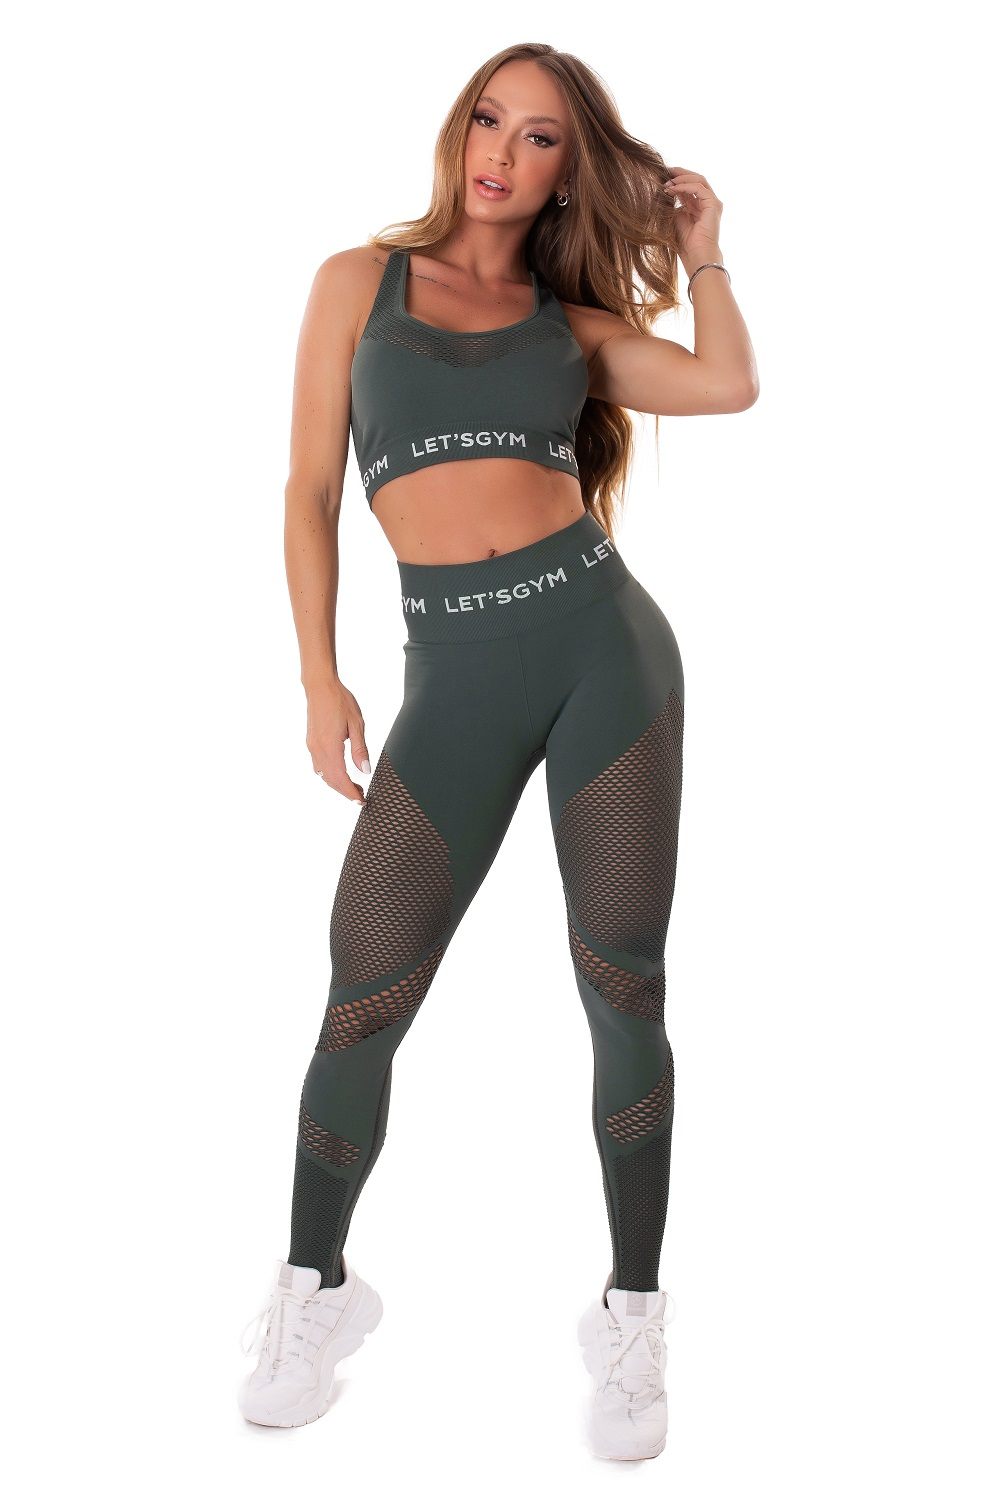 TOP SEAMLESS STYLISH SEM COSTURA VERDE MILITAR LETSGYM